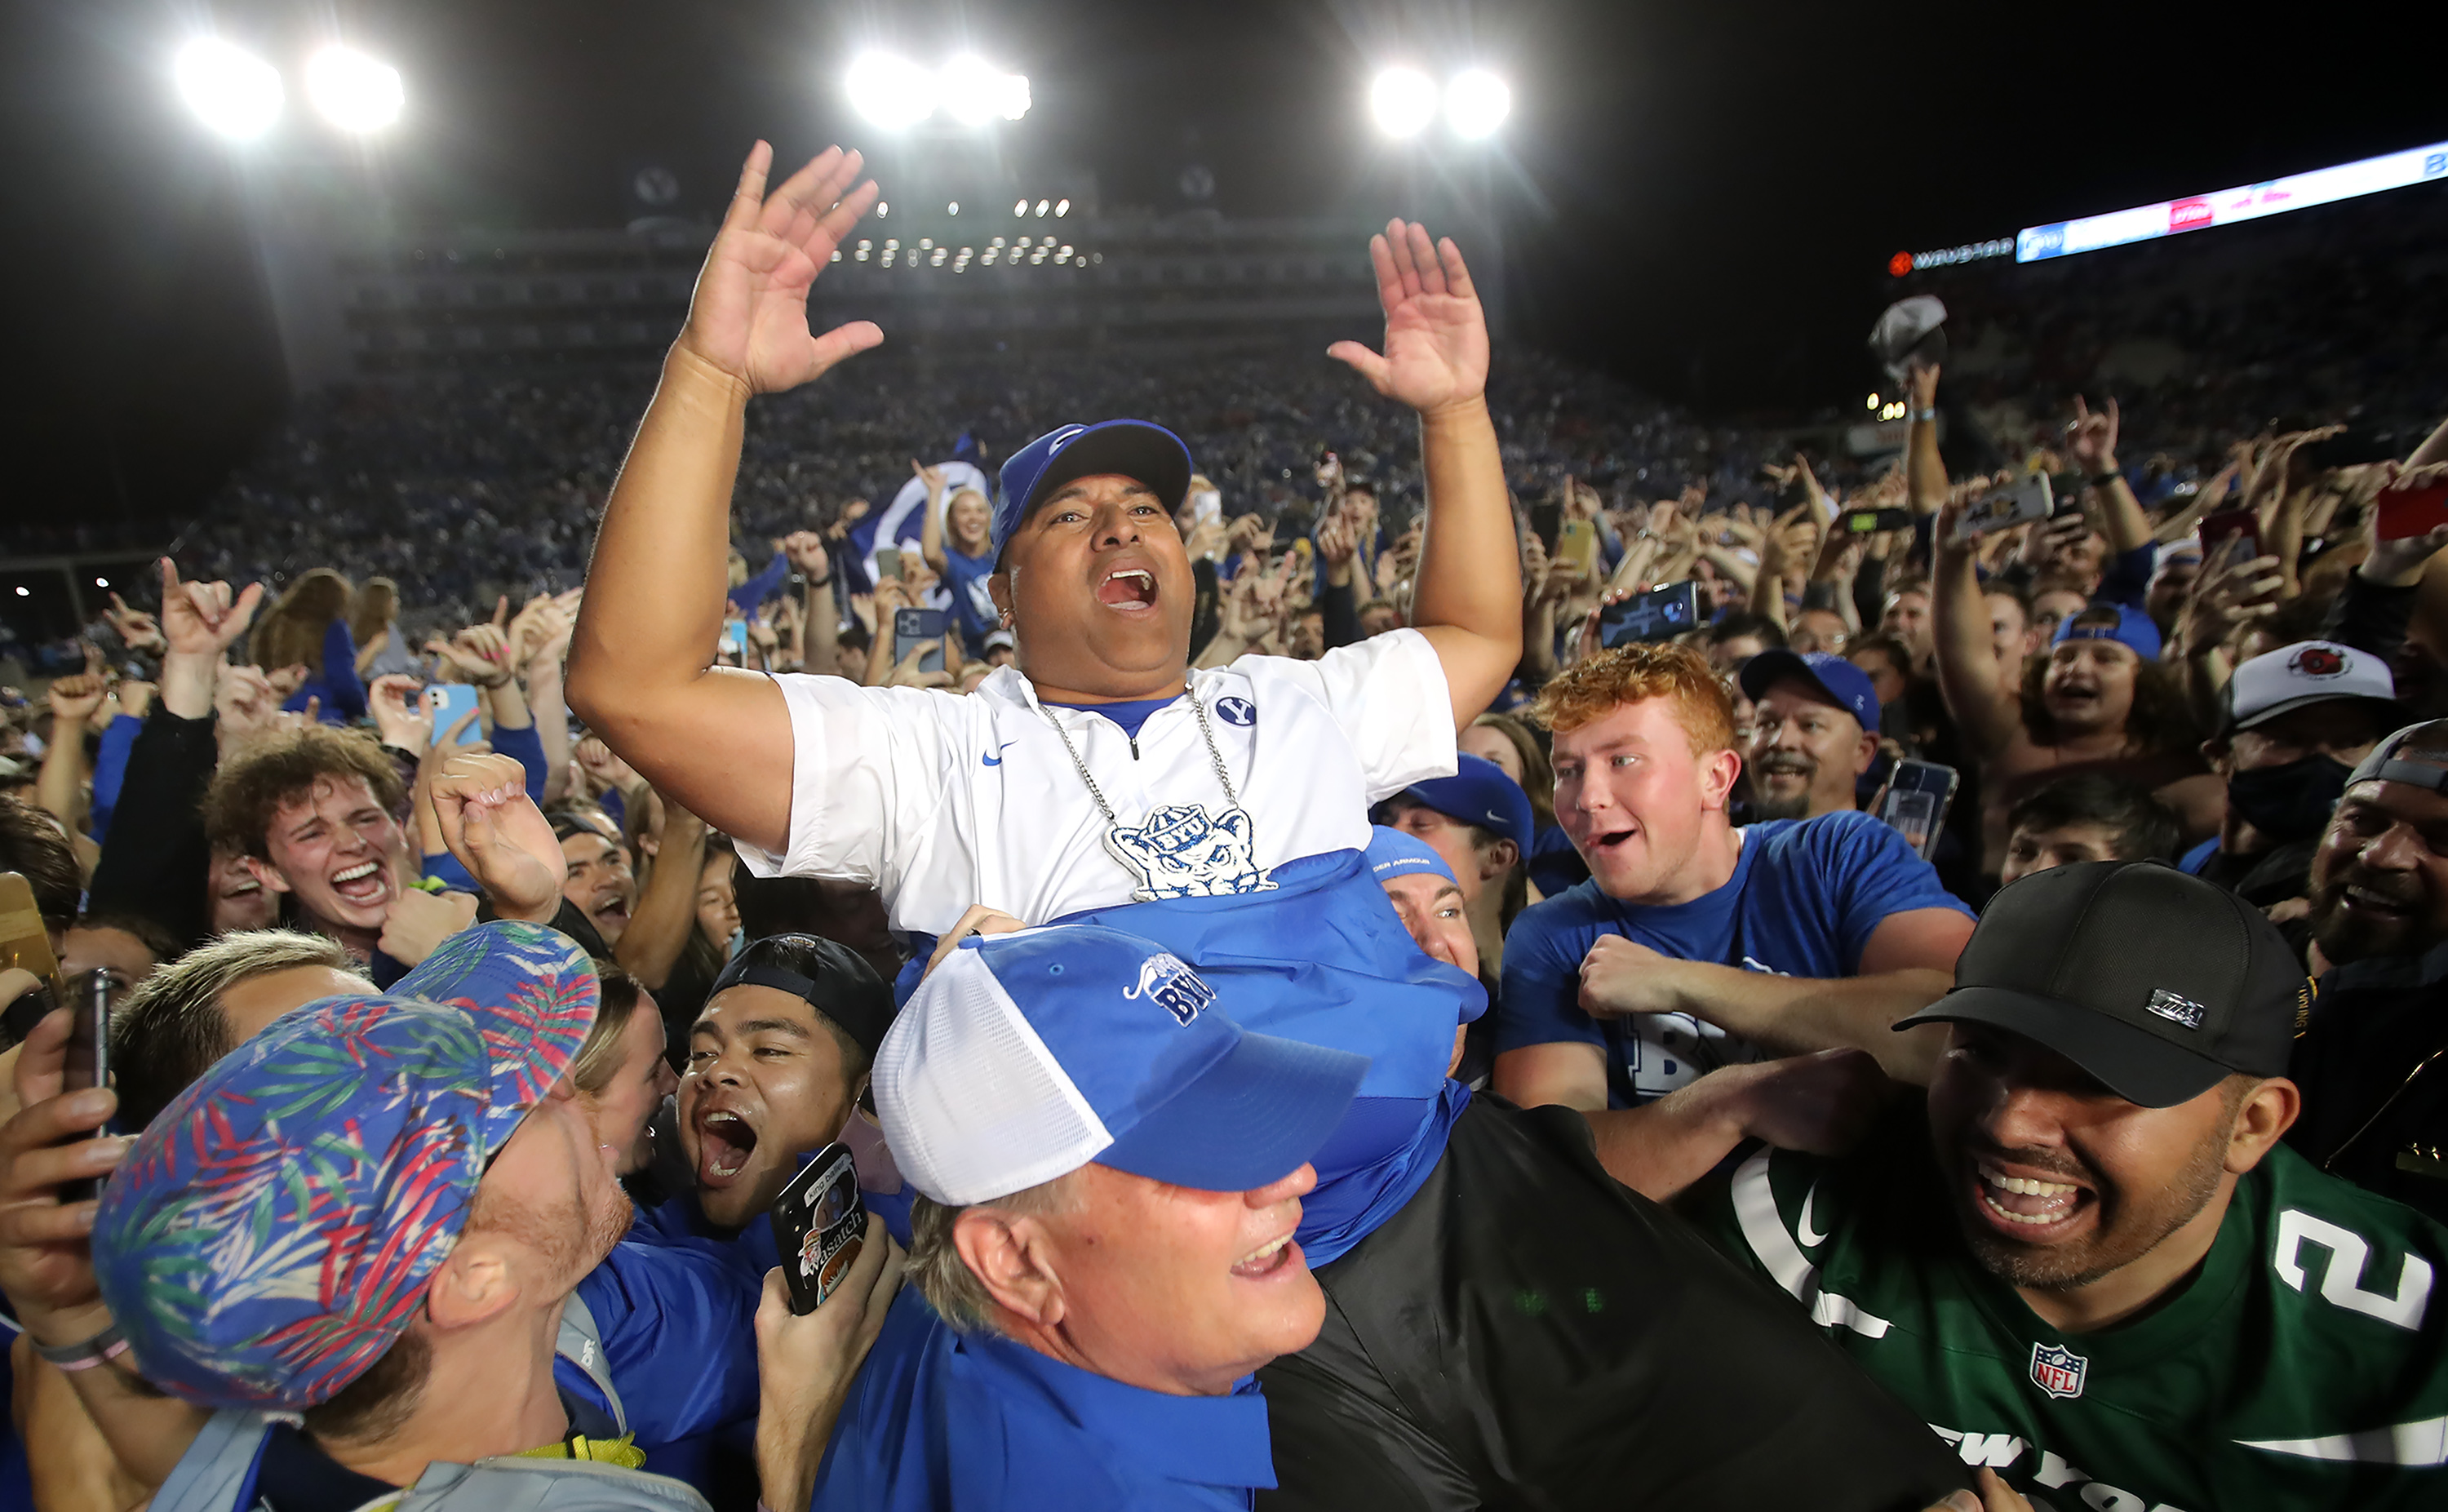 Brigham Young Cougars head coach Kalani Sitake celebrates the win as he is lifted into the air by fans as BYU defeats Utah.